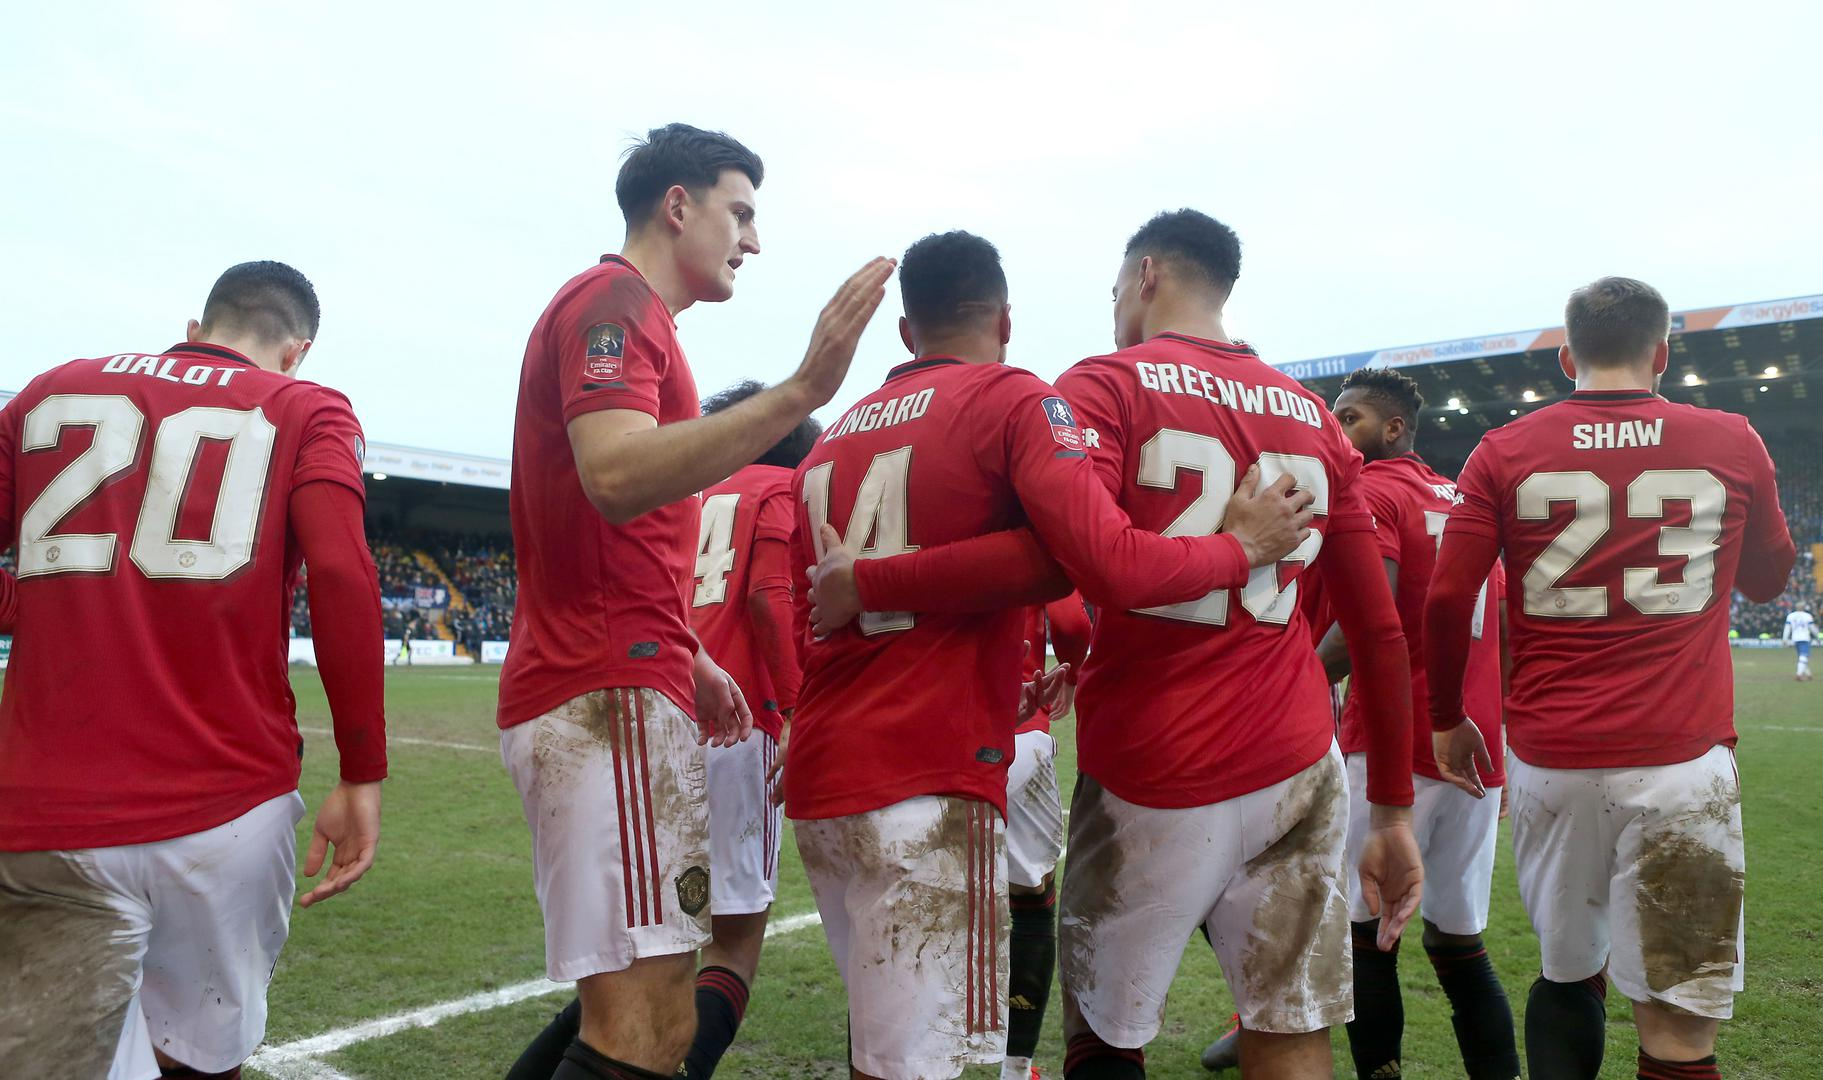 United celebrate a goal at Tranmere in the last round